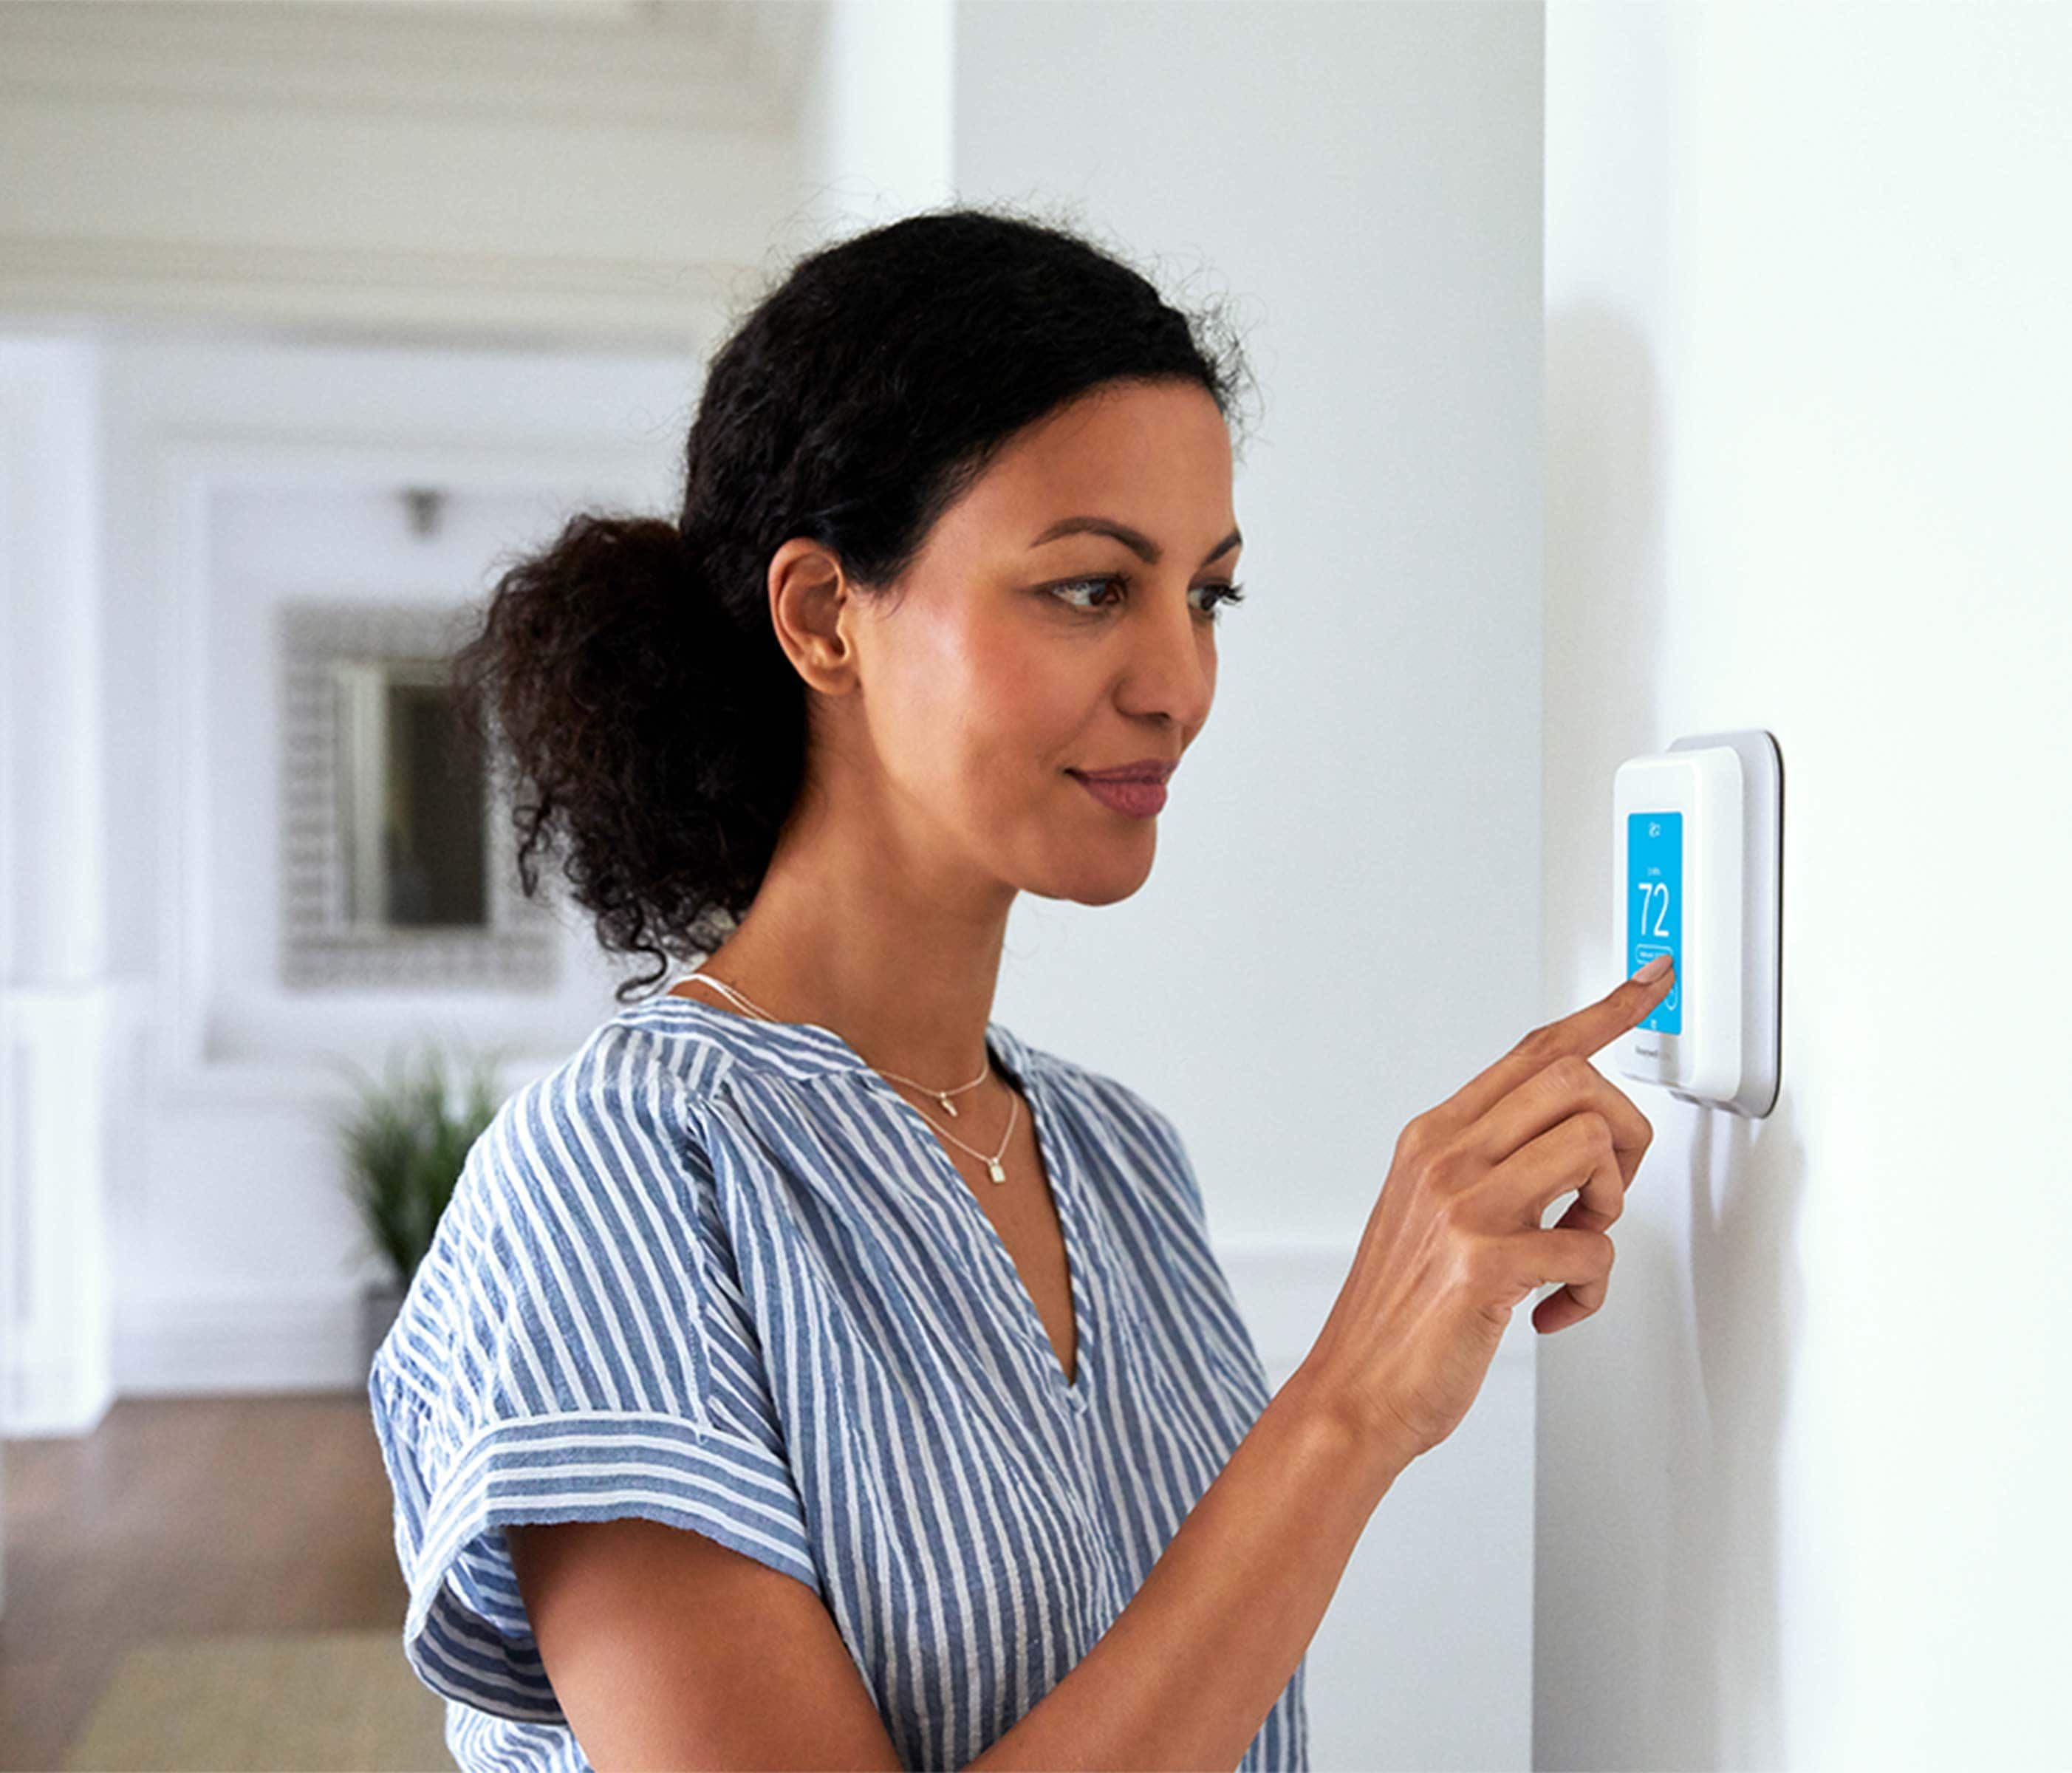 Control airflow and energy in your home with a smart home thermostat.